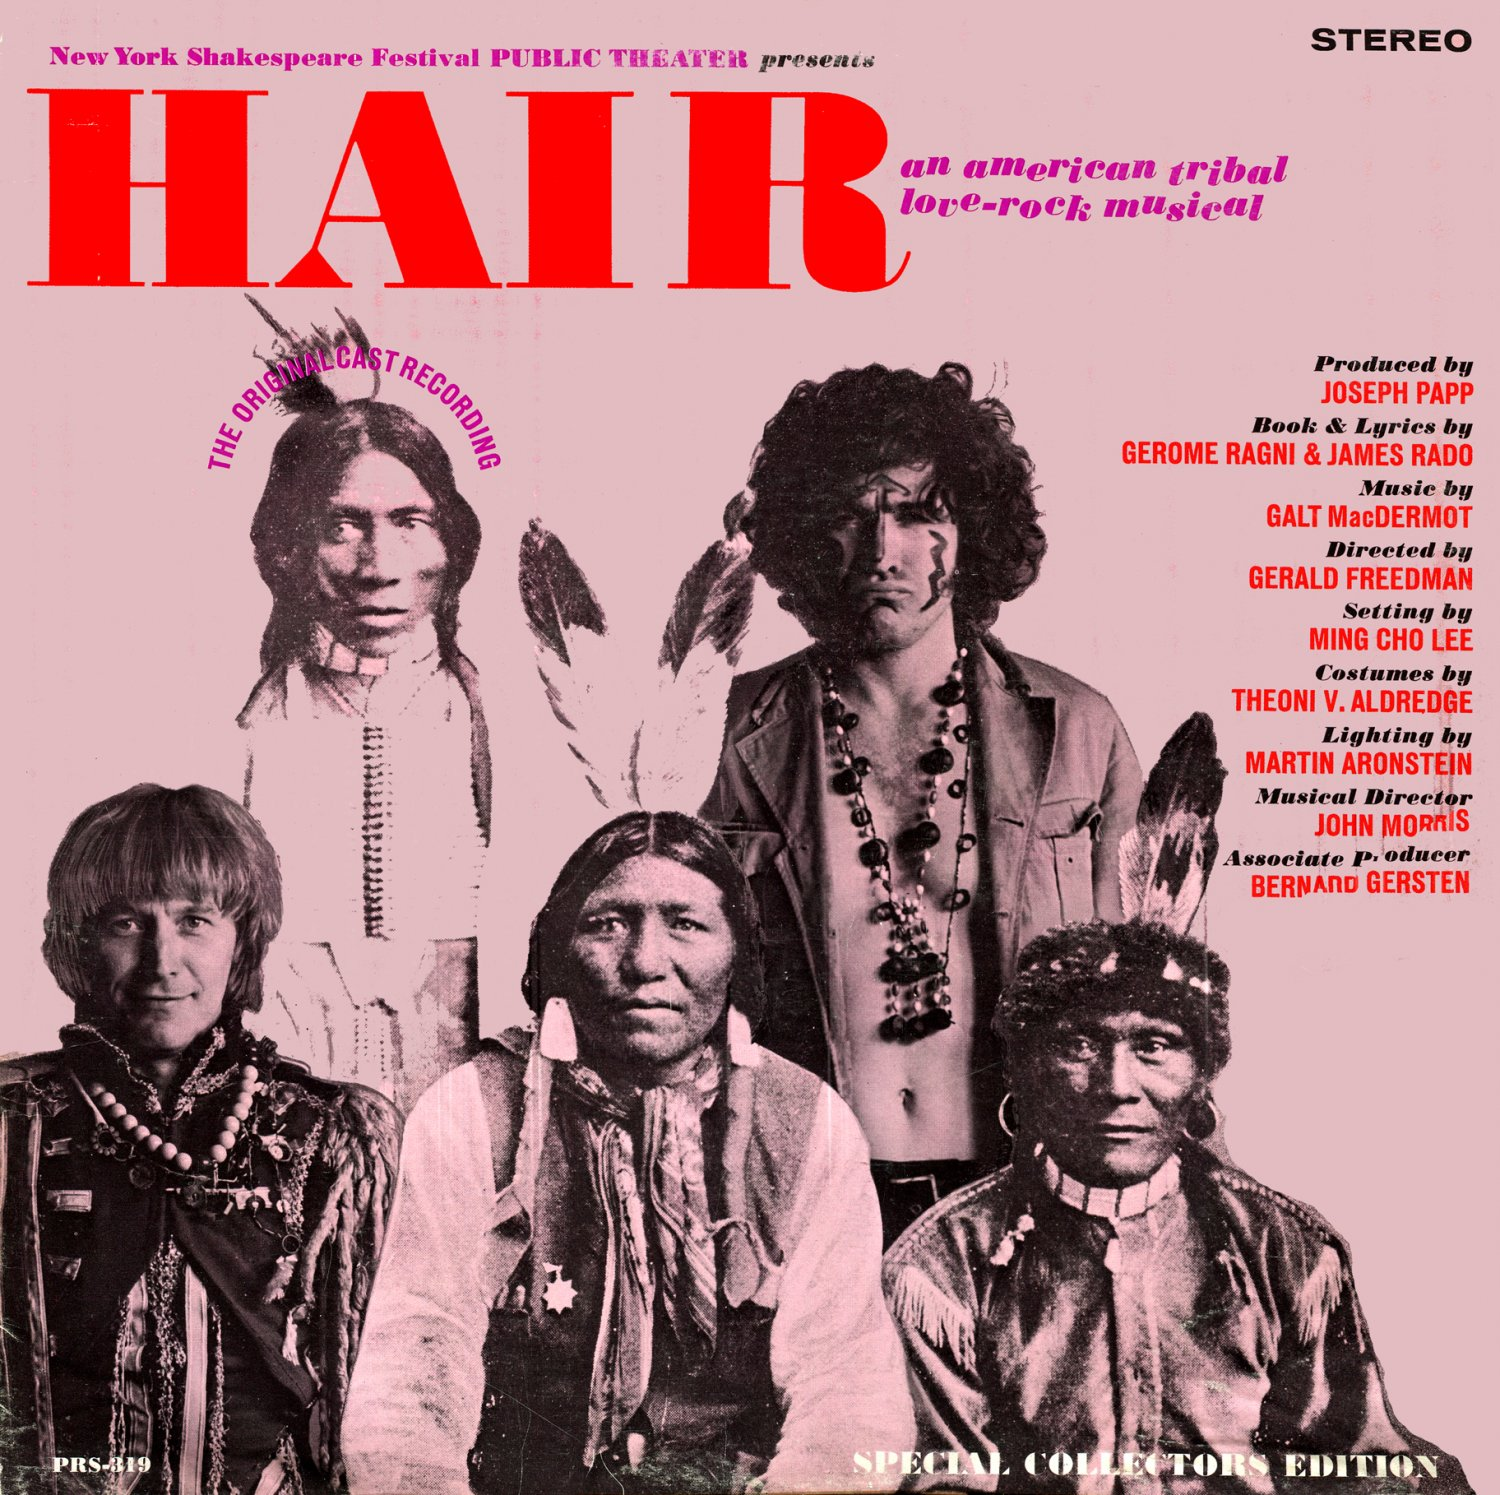 hair show music soundtrack image gallery hair musical